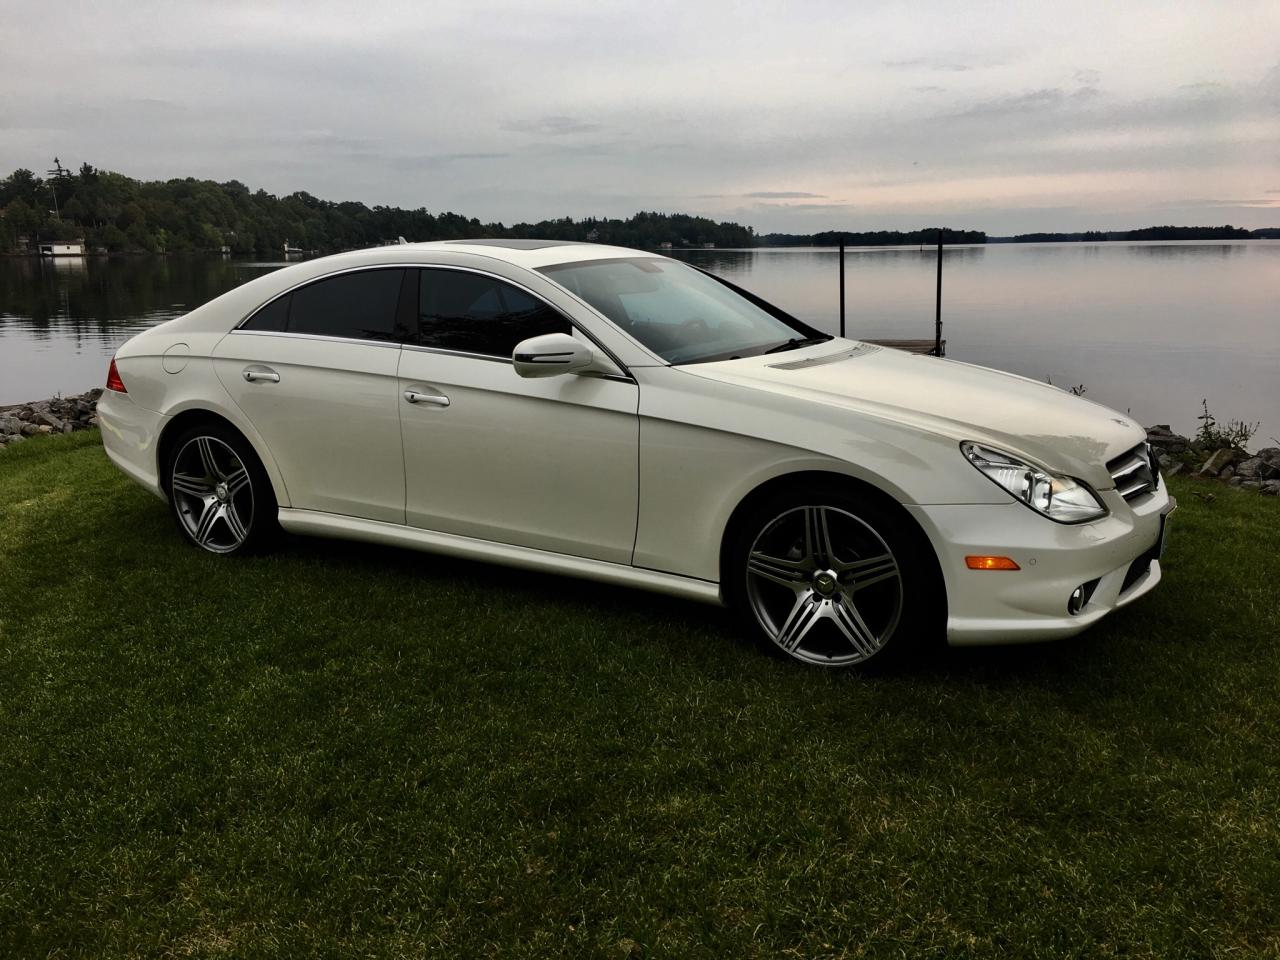 Used 2011 mercedes benz cls class cls550 only 62900 for for 2011 mercedes benz cls550 for sale